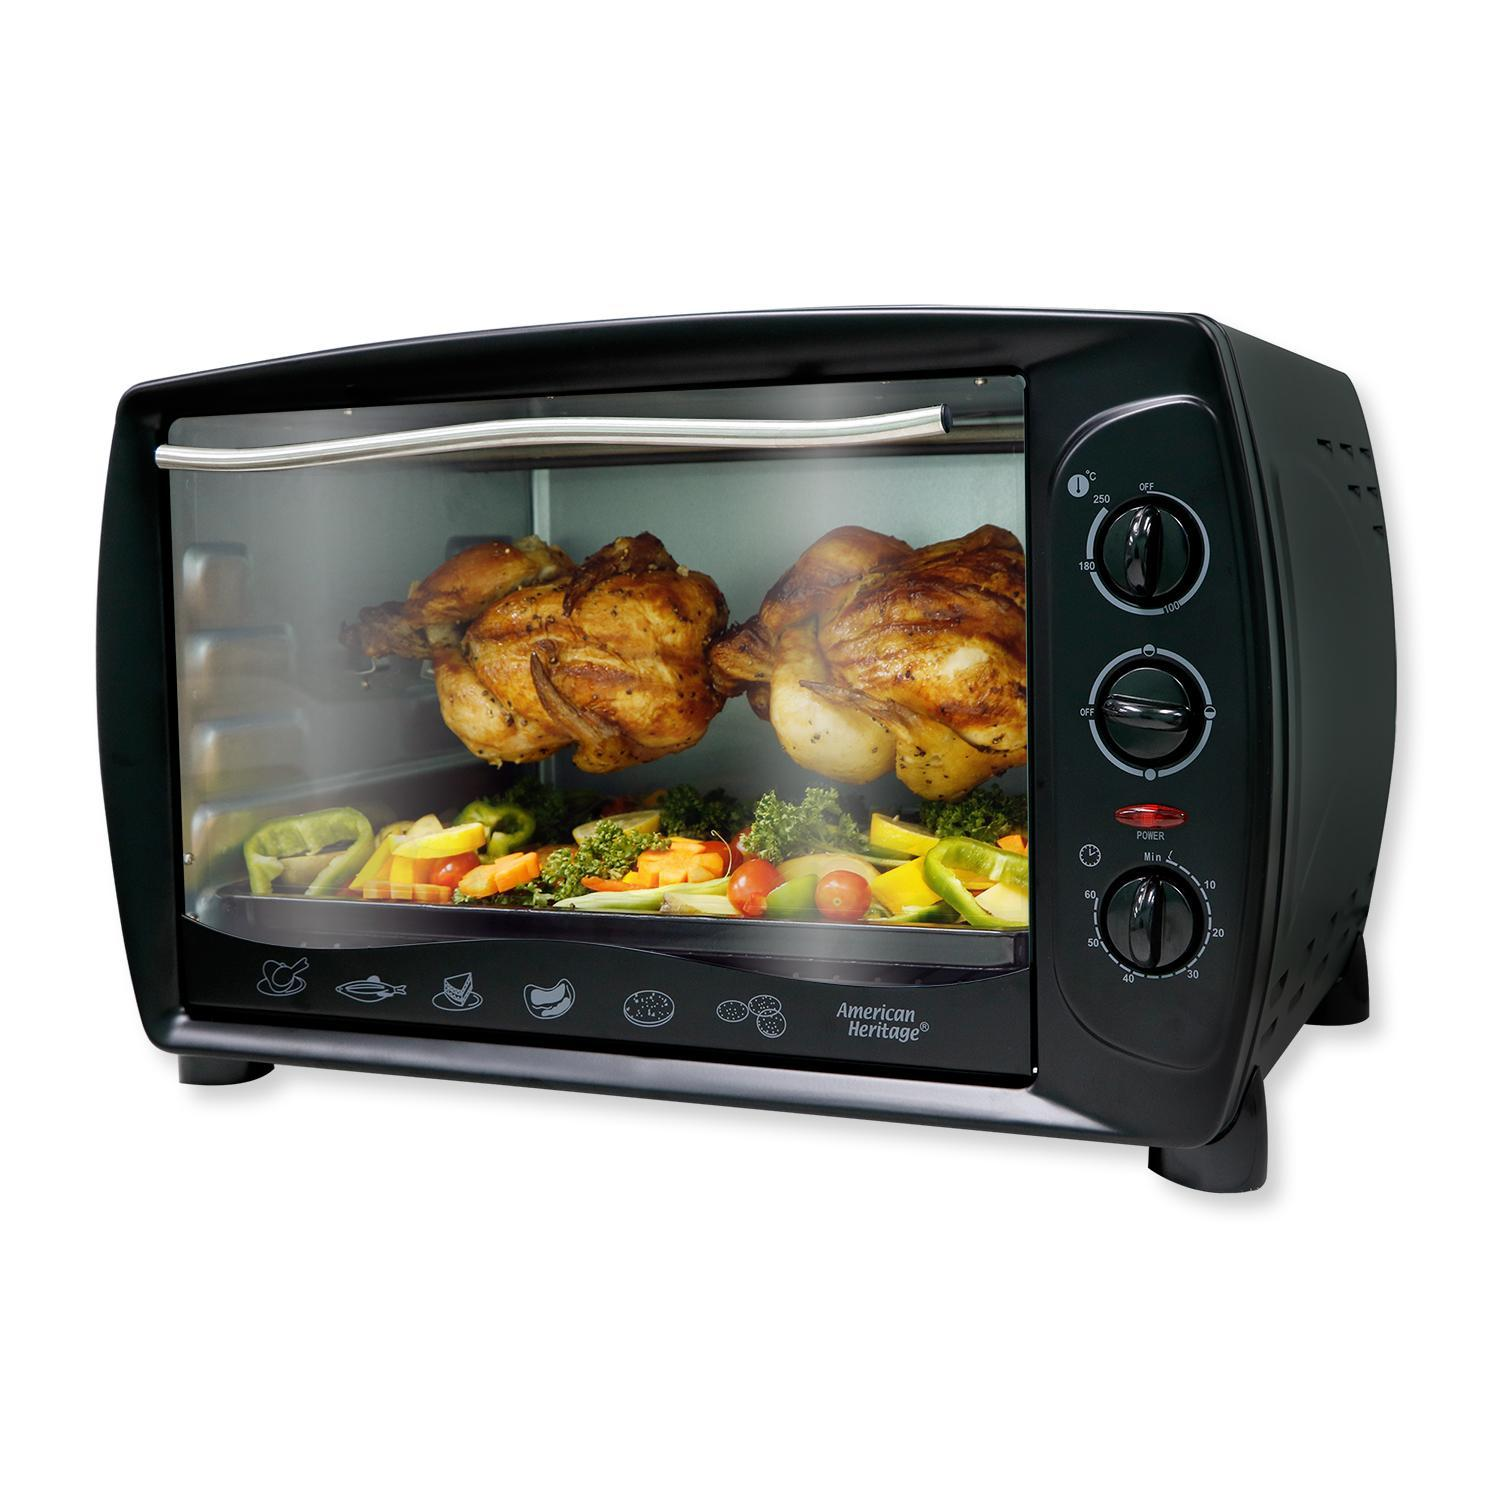 Oven For Sale Oven Toaster Prices Brands Review In Philippines